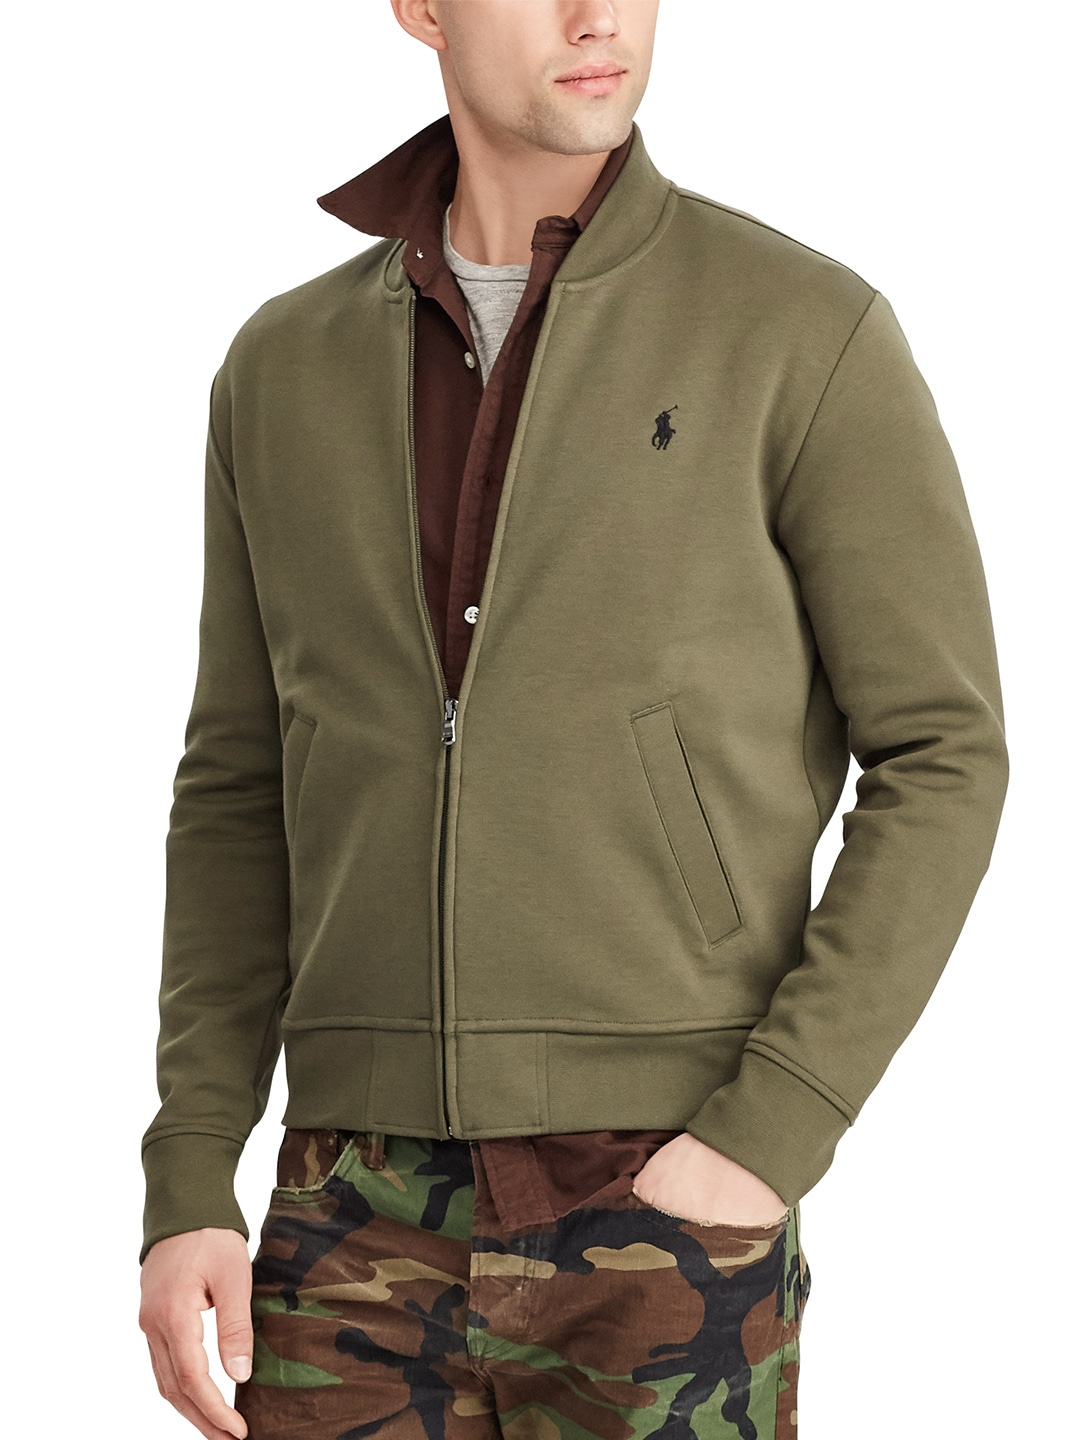 8ff18c96718d Polo For Men Jackets - Buy Polo For Men Jackets online in India